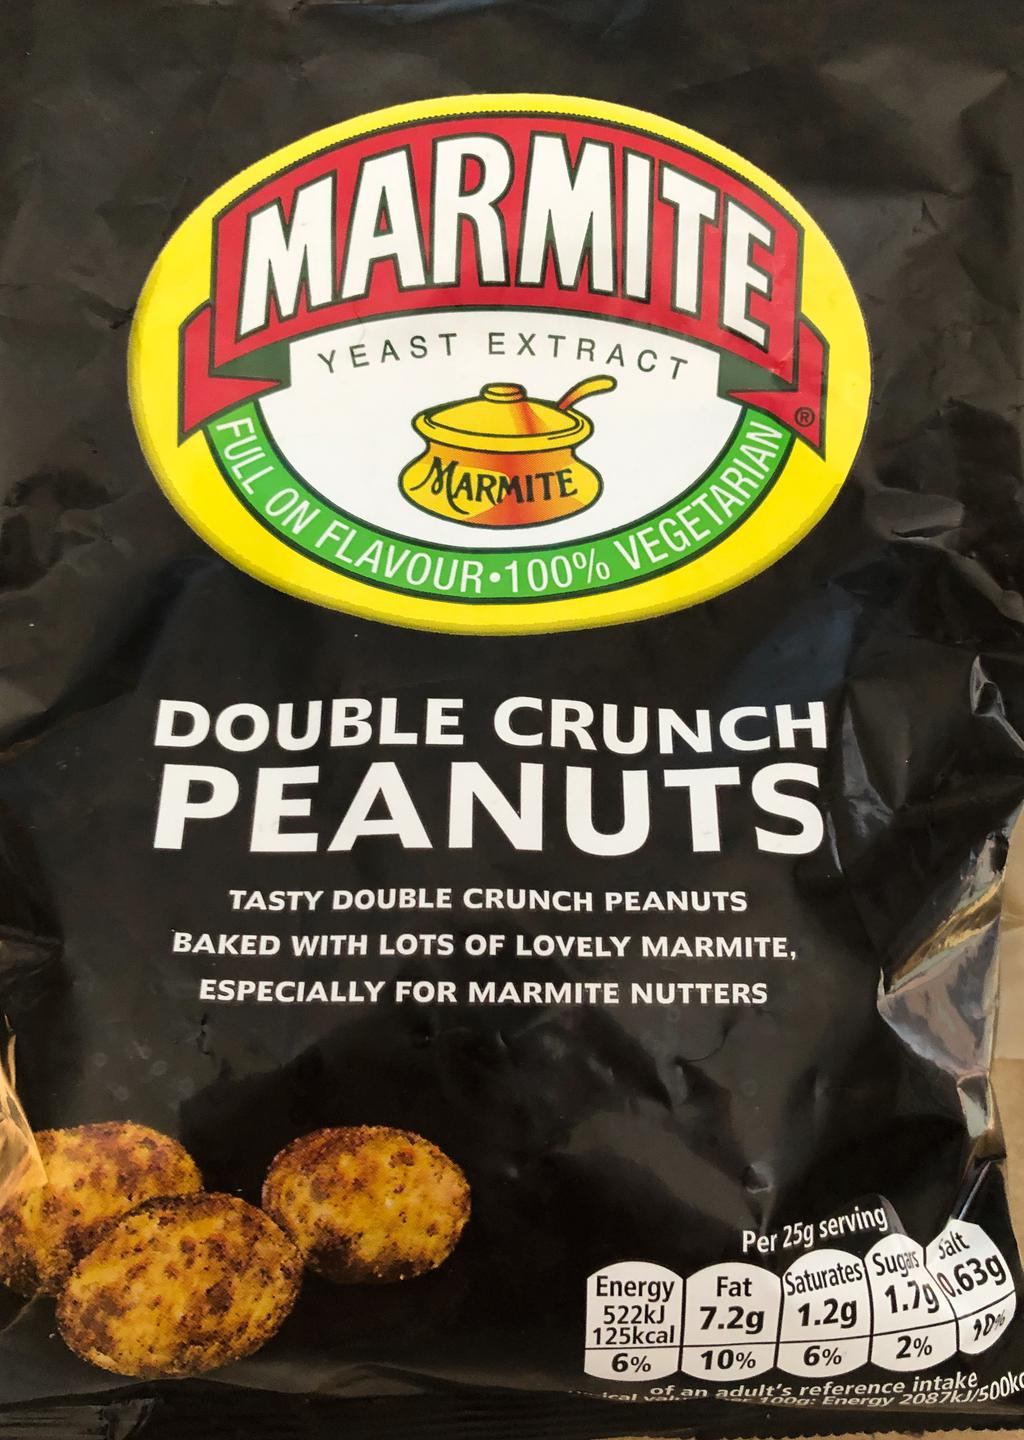 Double crunch peanuts